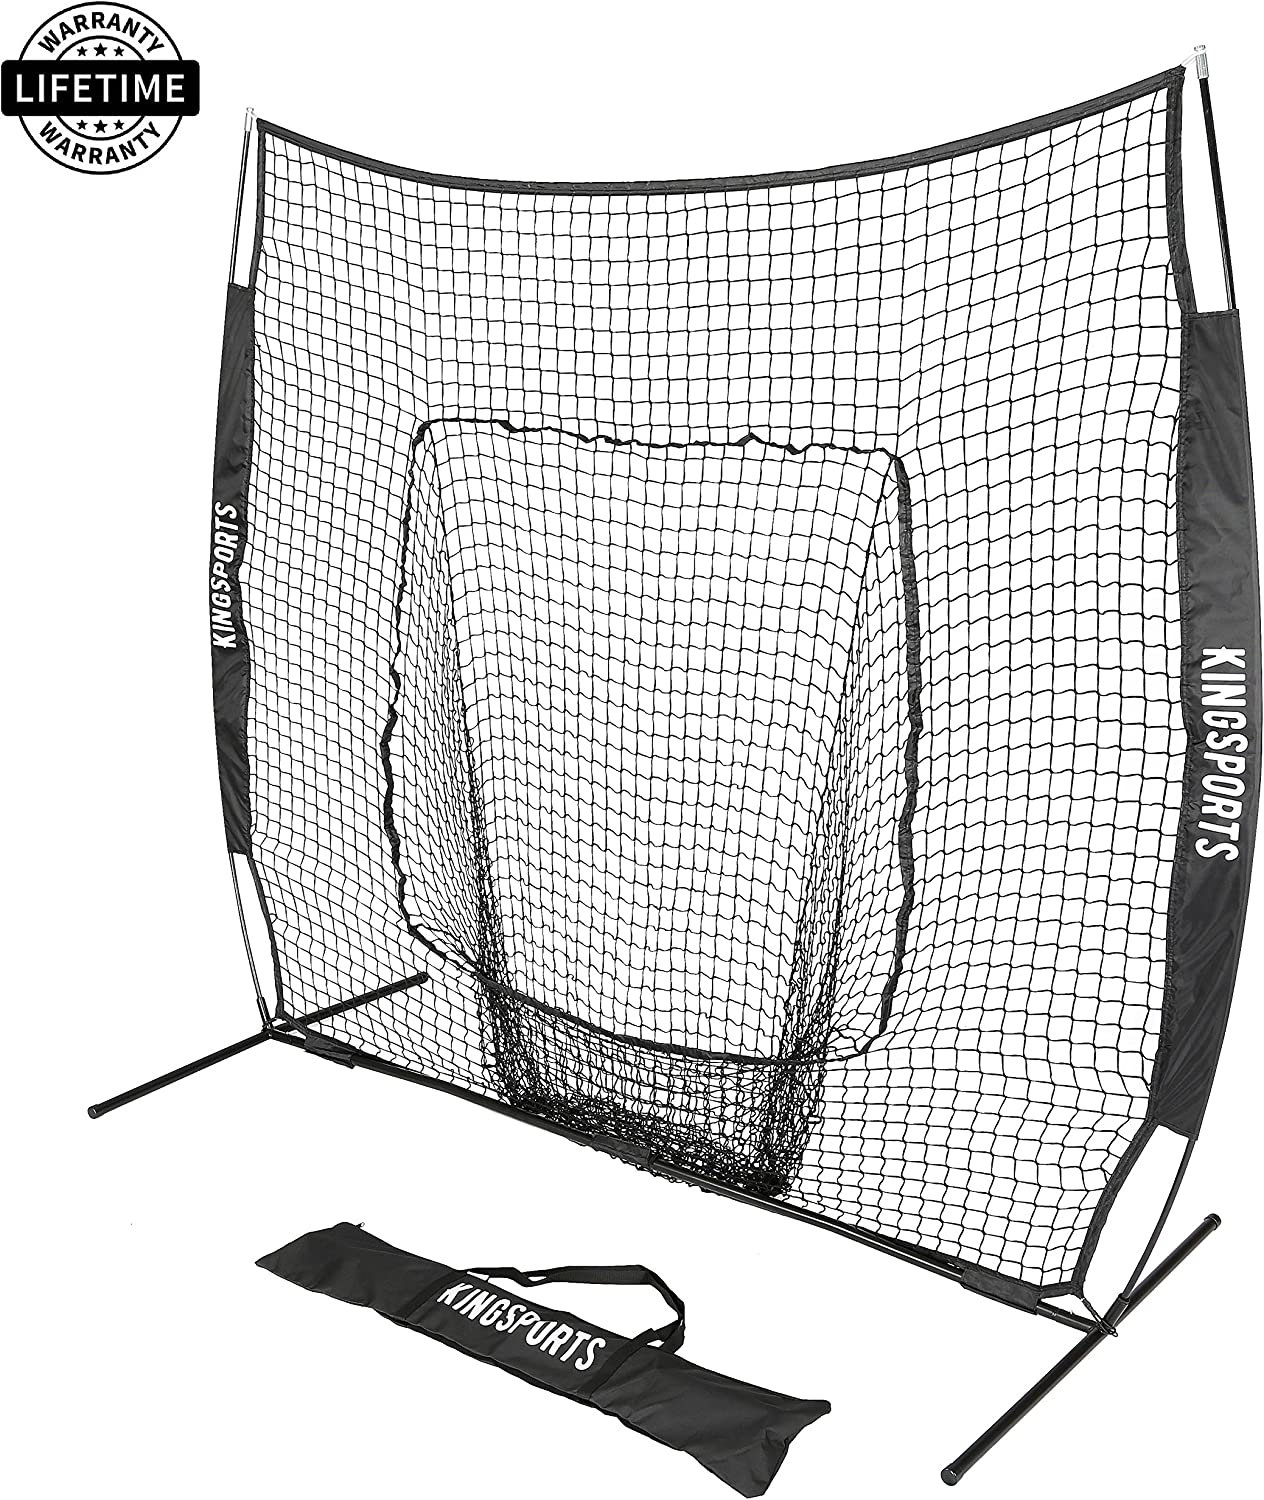 KingSports Collapsible Baseball Net Softball Net, 7 x 7 Large Mouth Outdoor Sports Net with Bow Net Frame Carry Bag